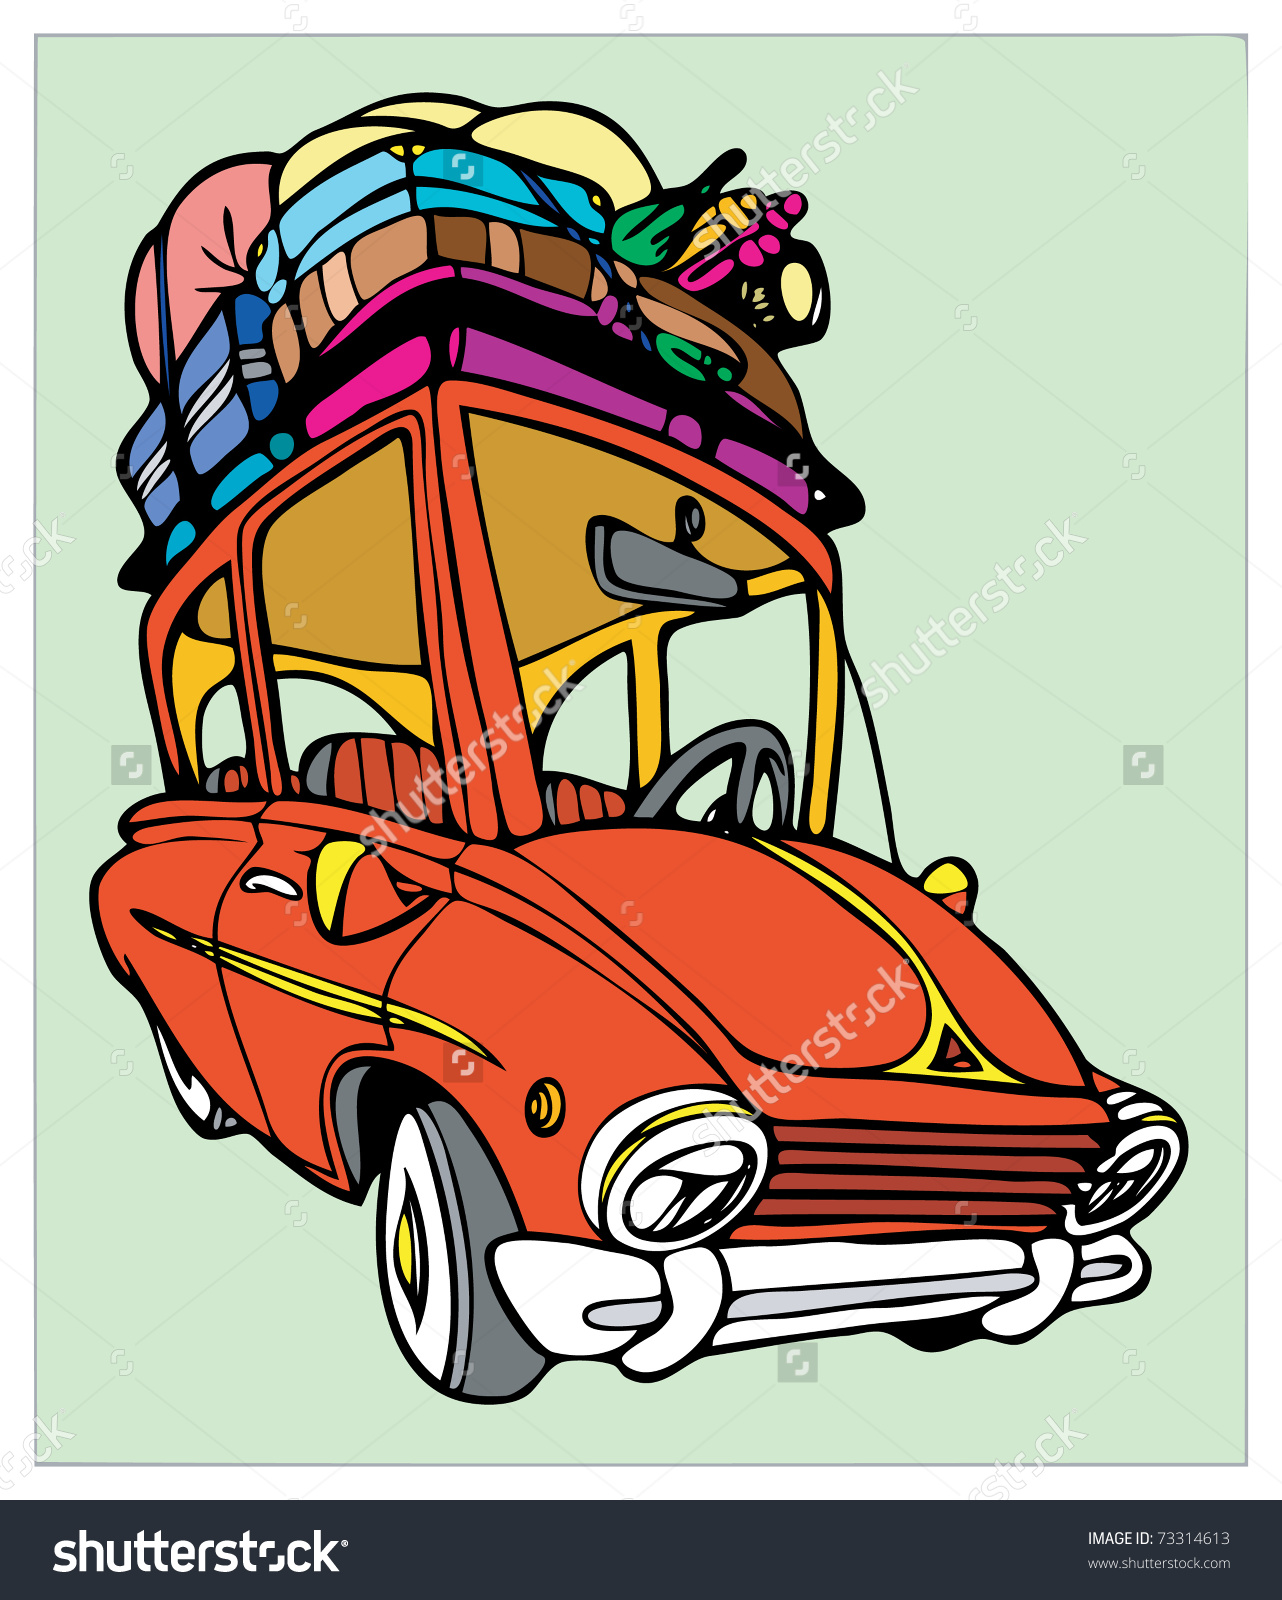 Red Car With Luggage For Holidays. Stock Vector Illustration.